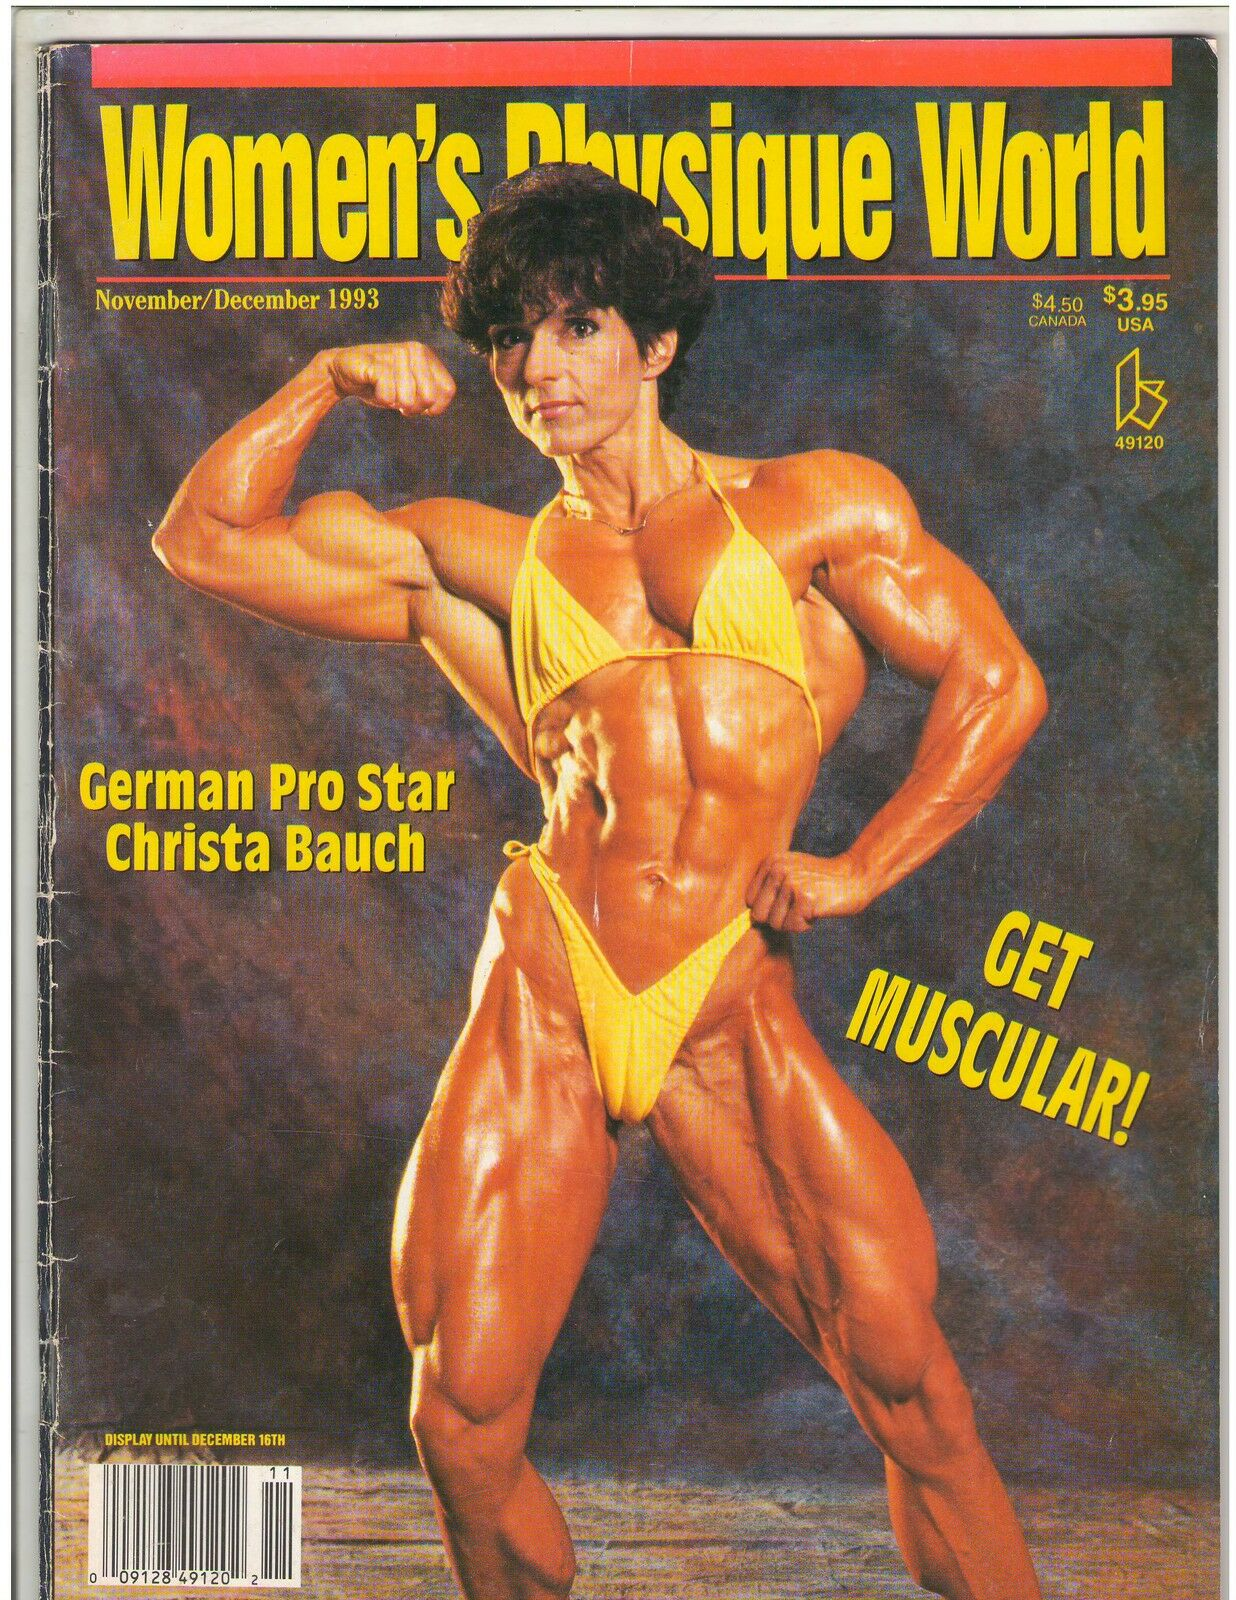 Women's Physique World Female Bodybuilding Mary Lynne McKenzie /Chris Roth 8-03